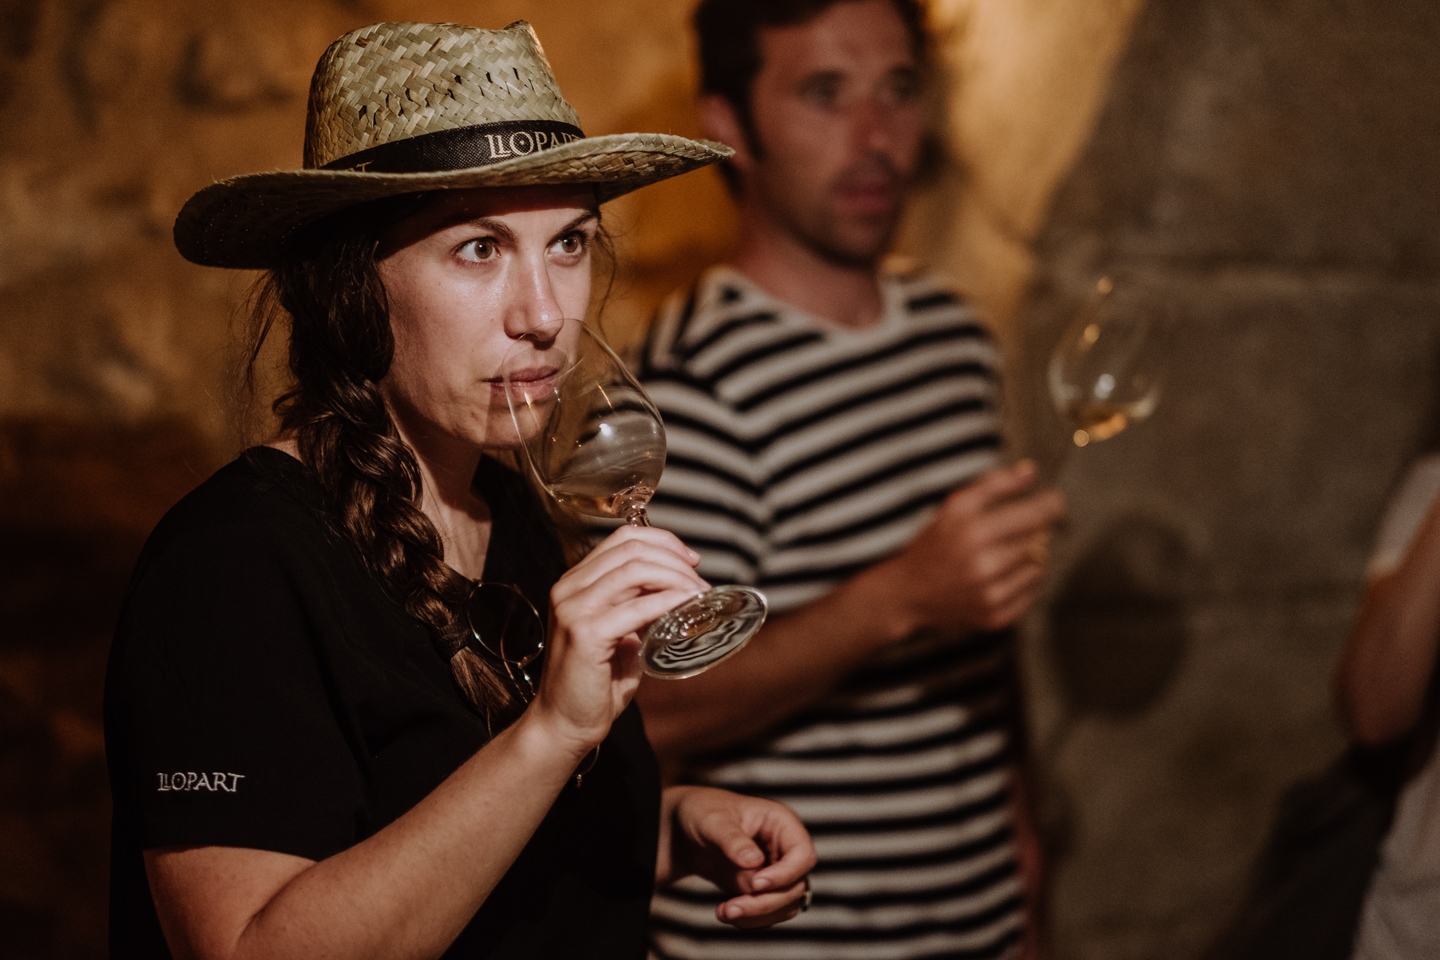 ENOTOURISM – The Wine and Cava Routes.